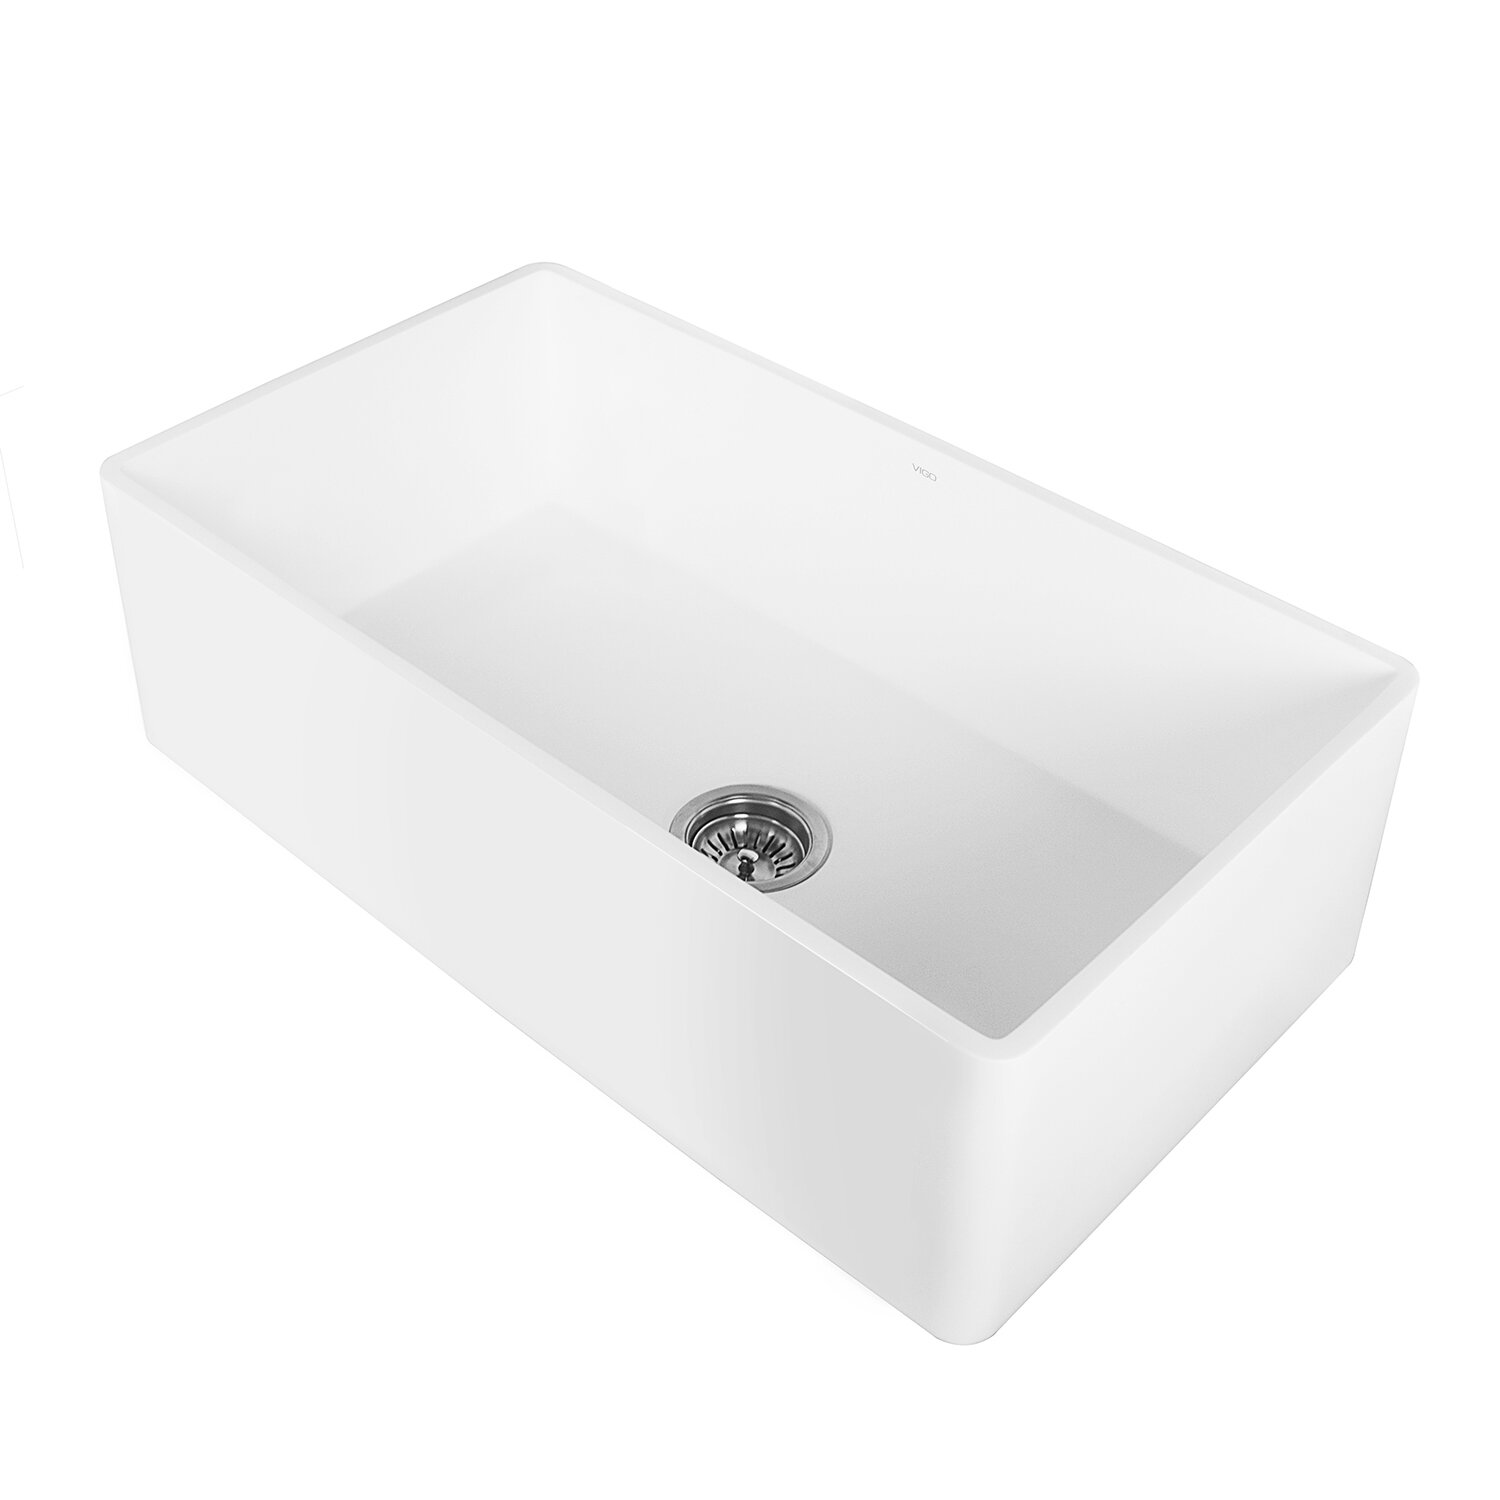 Vigo 36 inch Farmhouse Apron Single Bowl Matte Stone Kitchen Sink ...